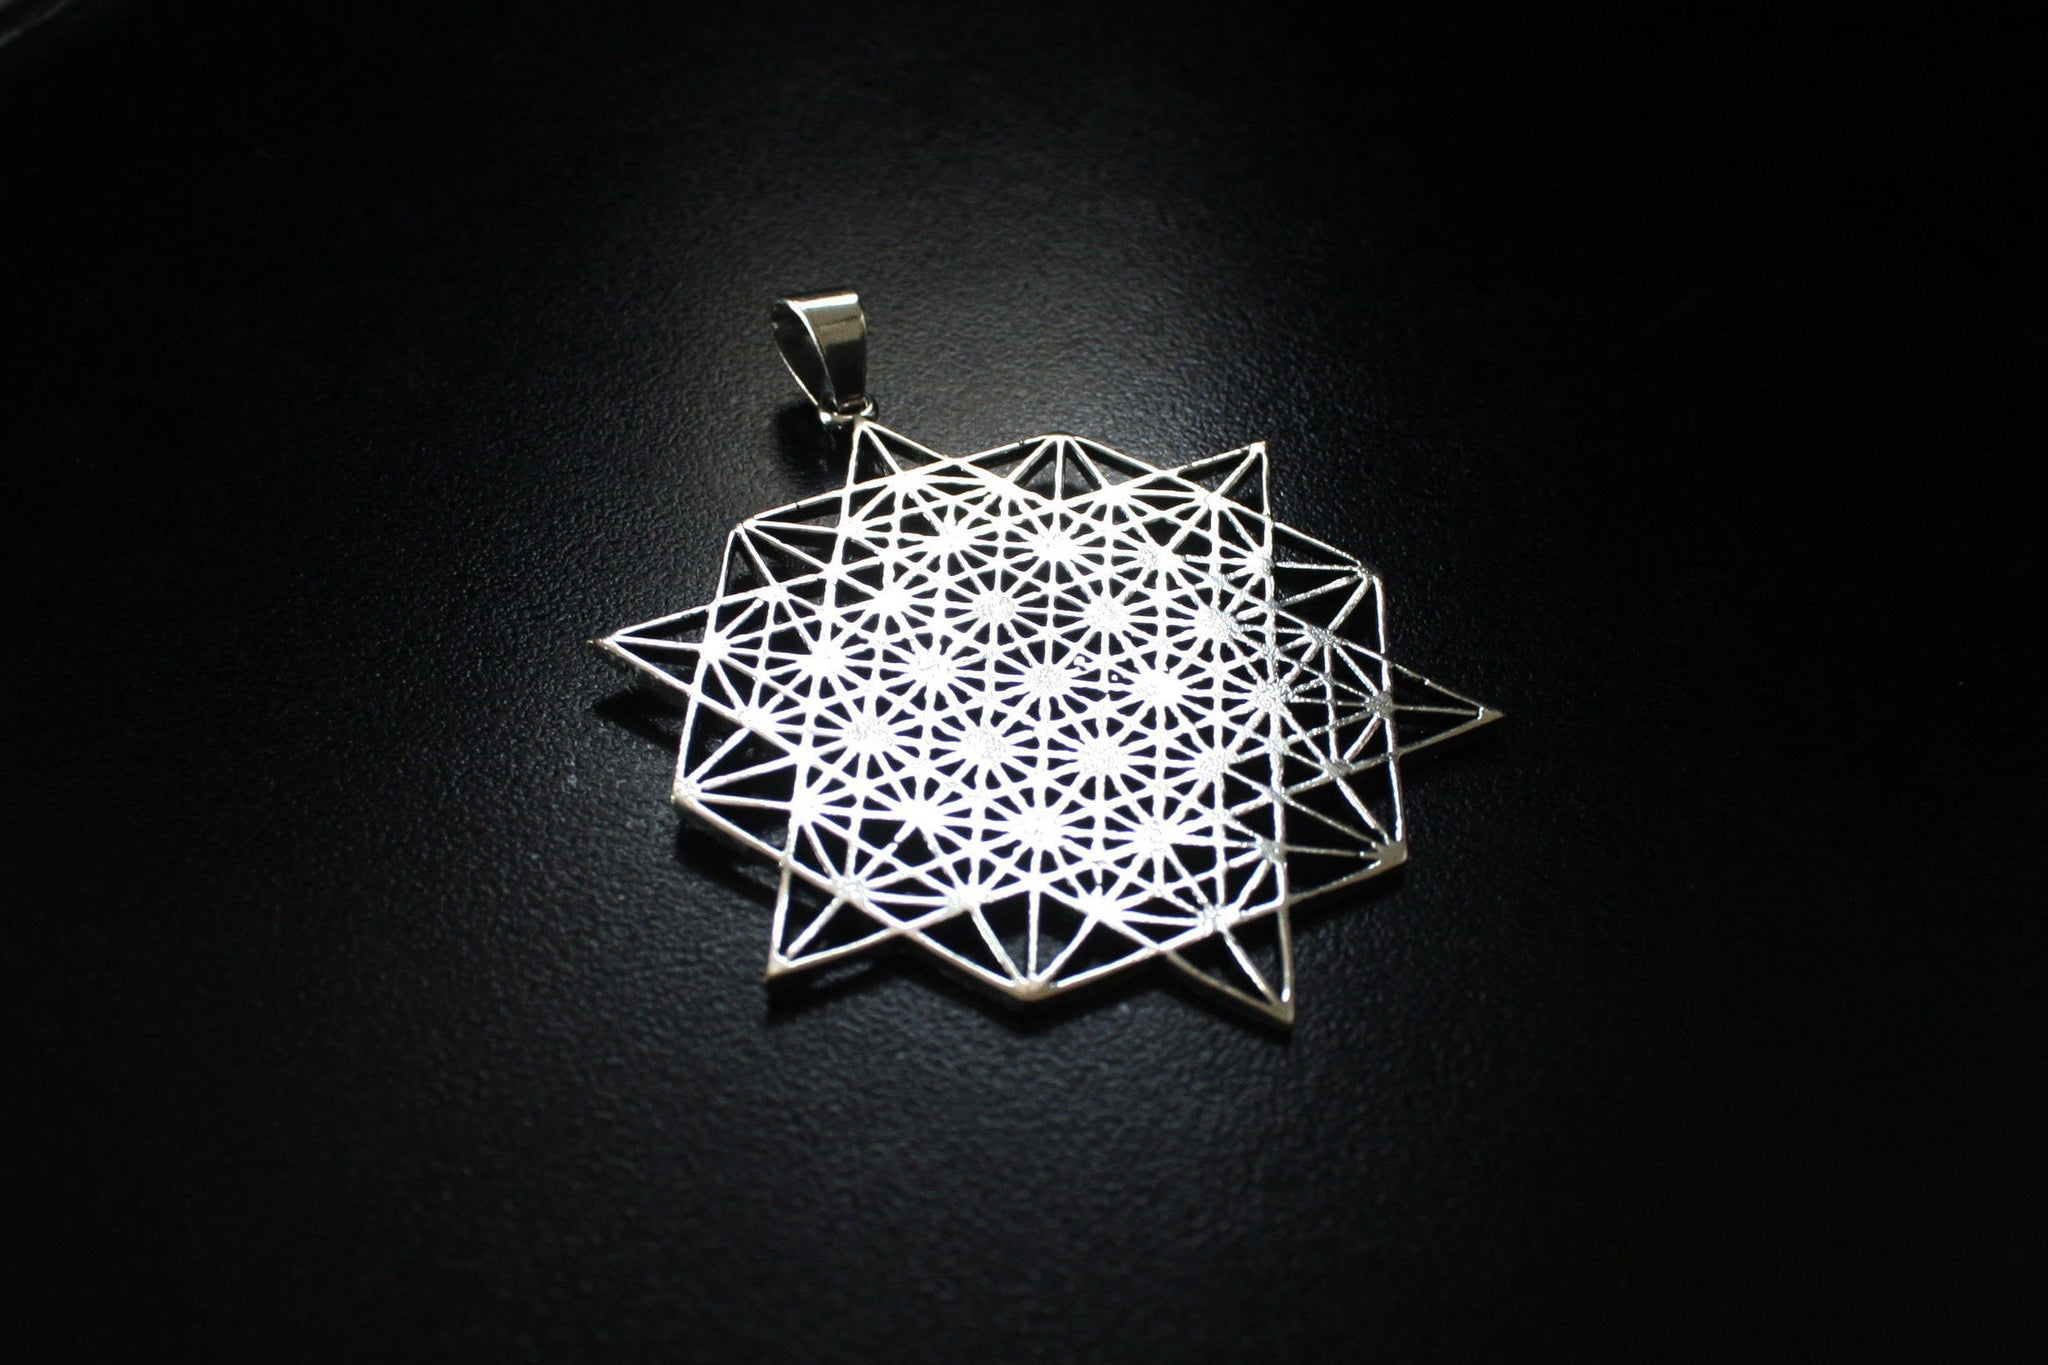 TETRAHEDRON STAR Silver Necklace - Flower of Life Necklace, Mandala Necklace, Sacred Geometry Necklace, Boho Necklace, Geometric Pendant